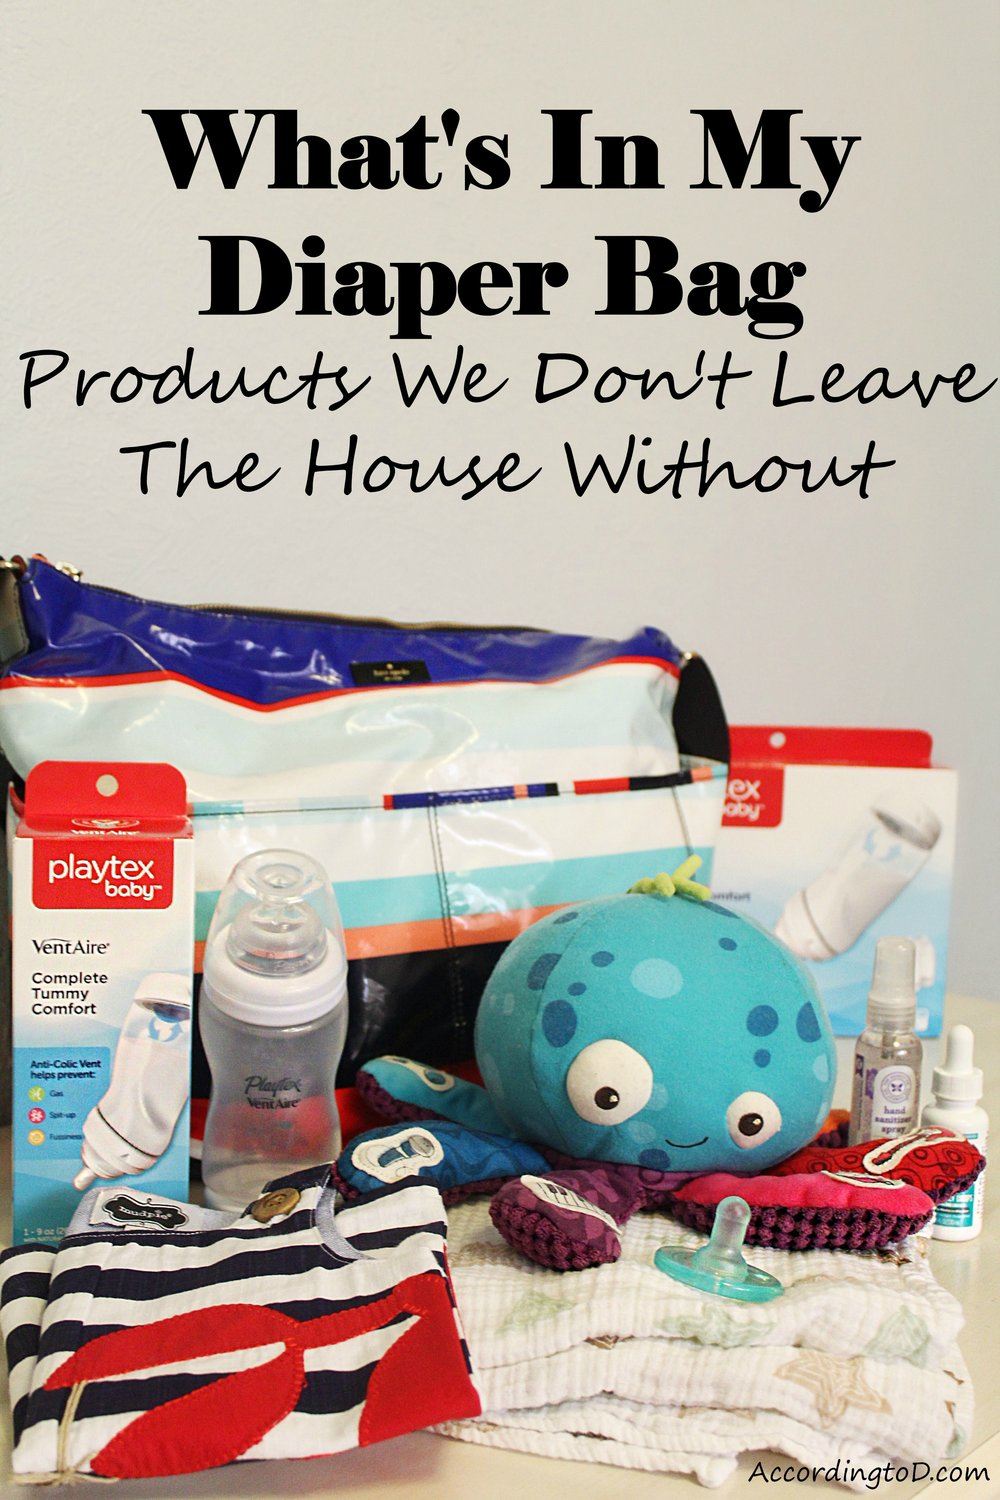 Whats-In-My-Diaper-Bag.jpg